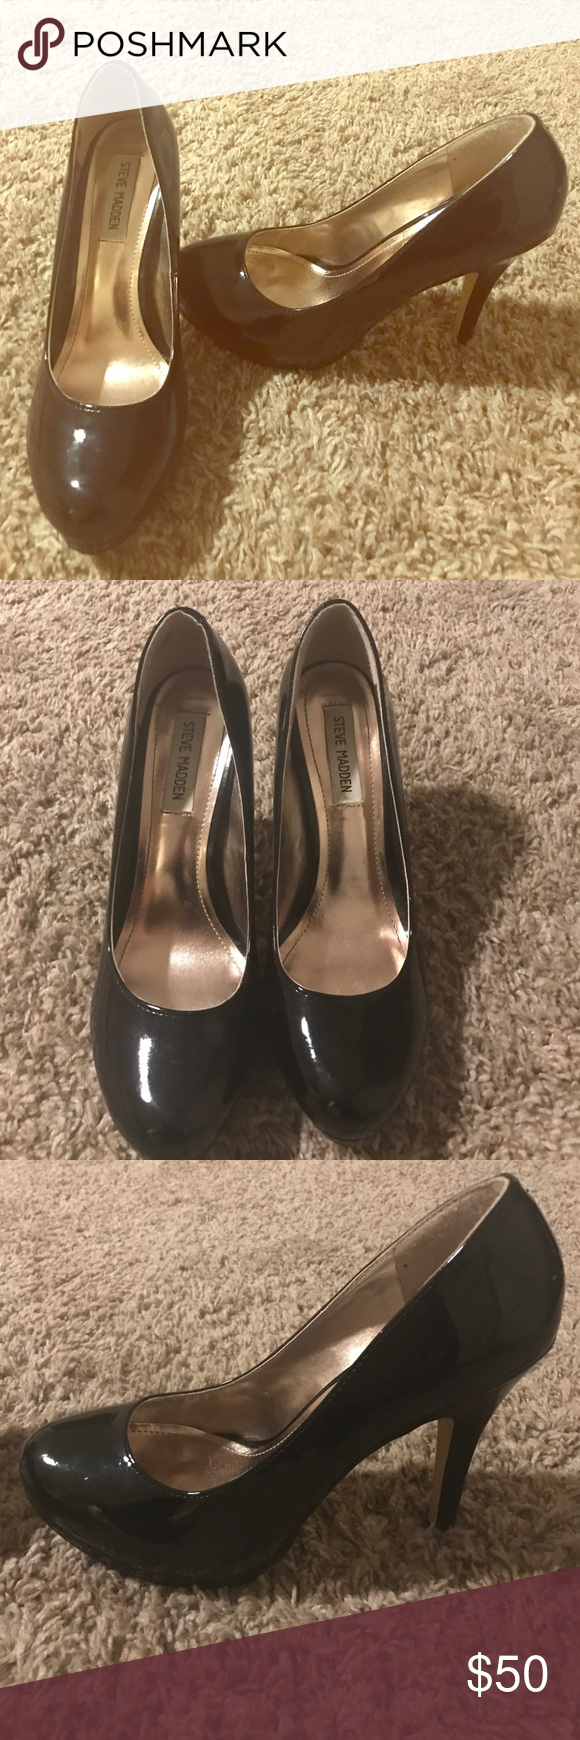 Steve Madden pumps Re posh! Too small for me! But so cute! Patent leather shiny. Adorable Steve Madden Shoes Heels